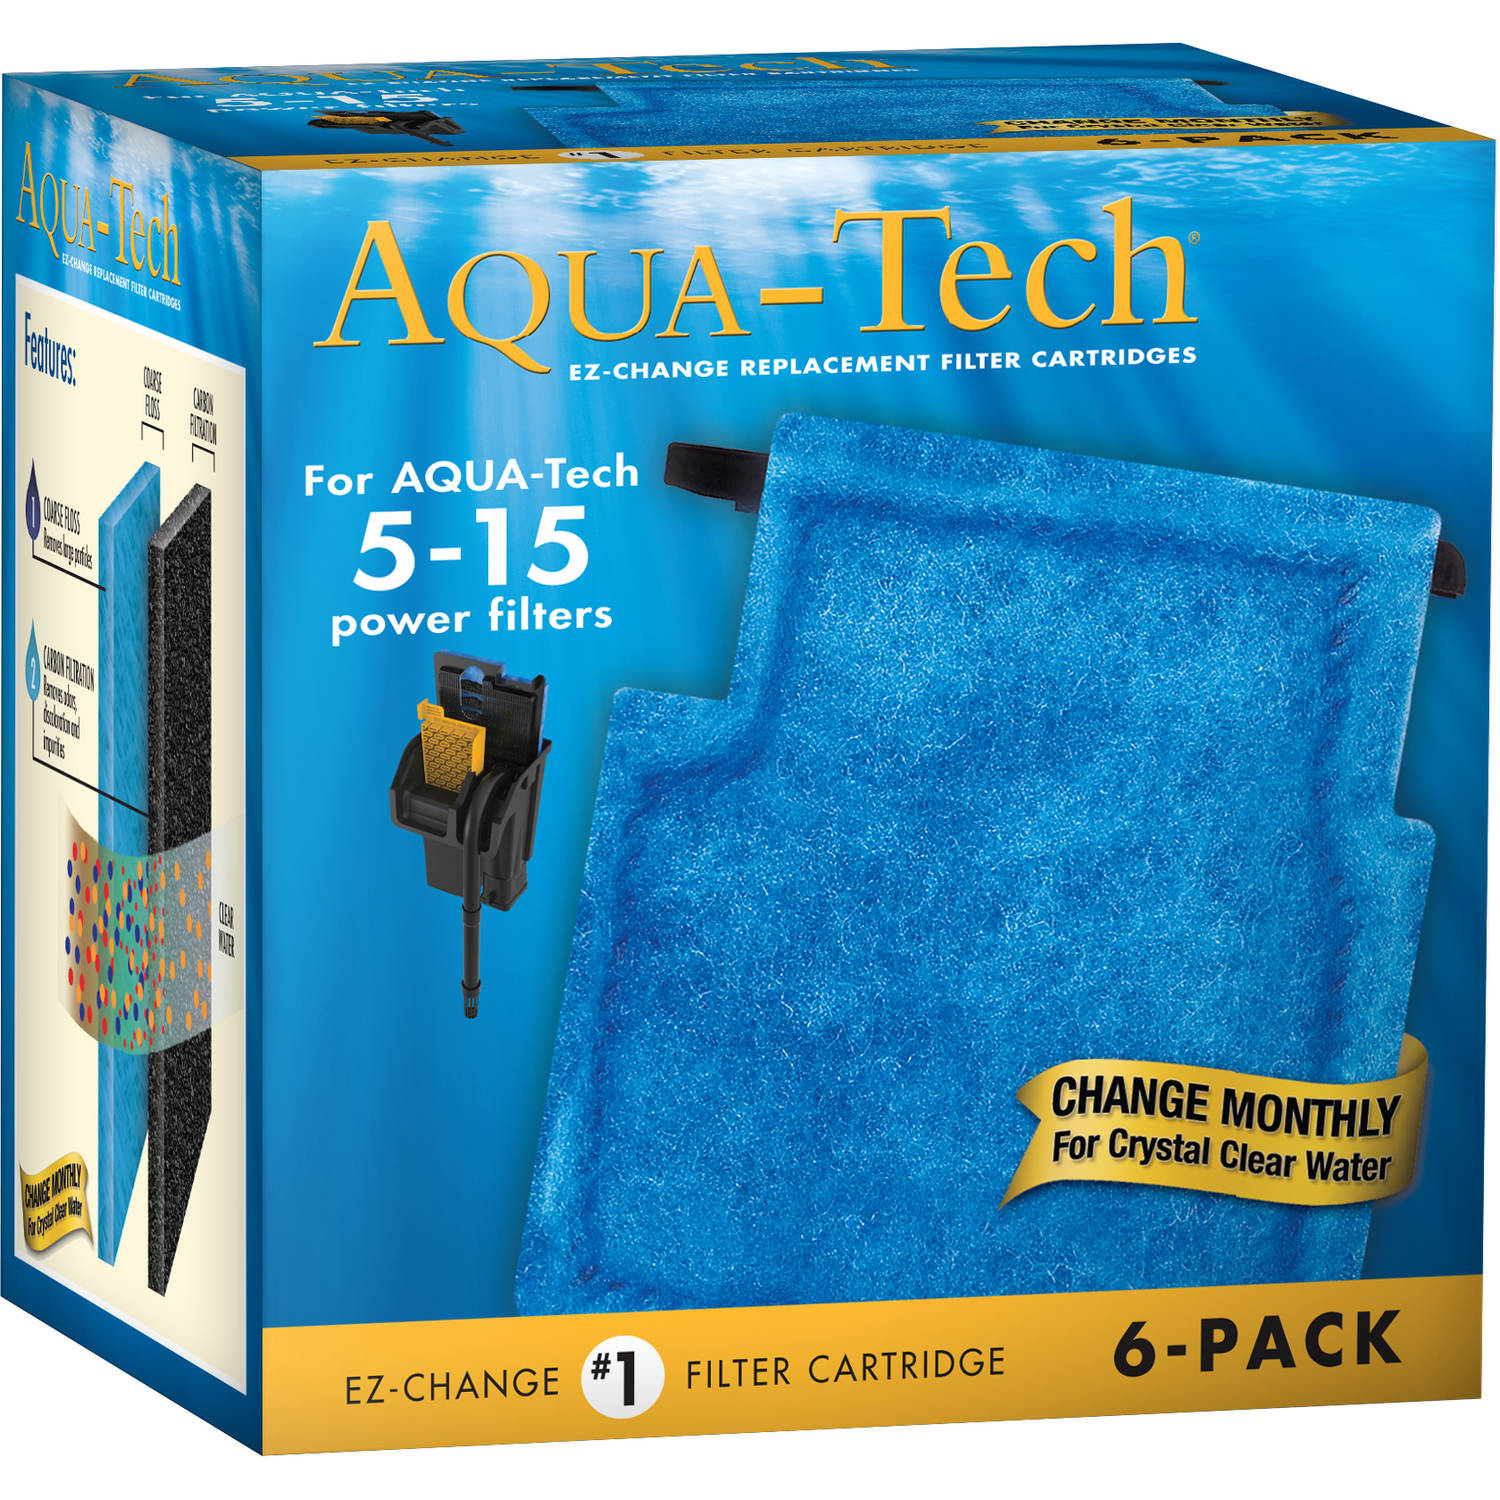 AquaTech 20/40-30/60 Filter Cartridge 6pk